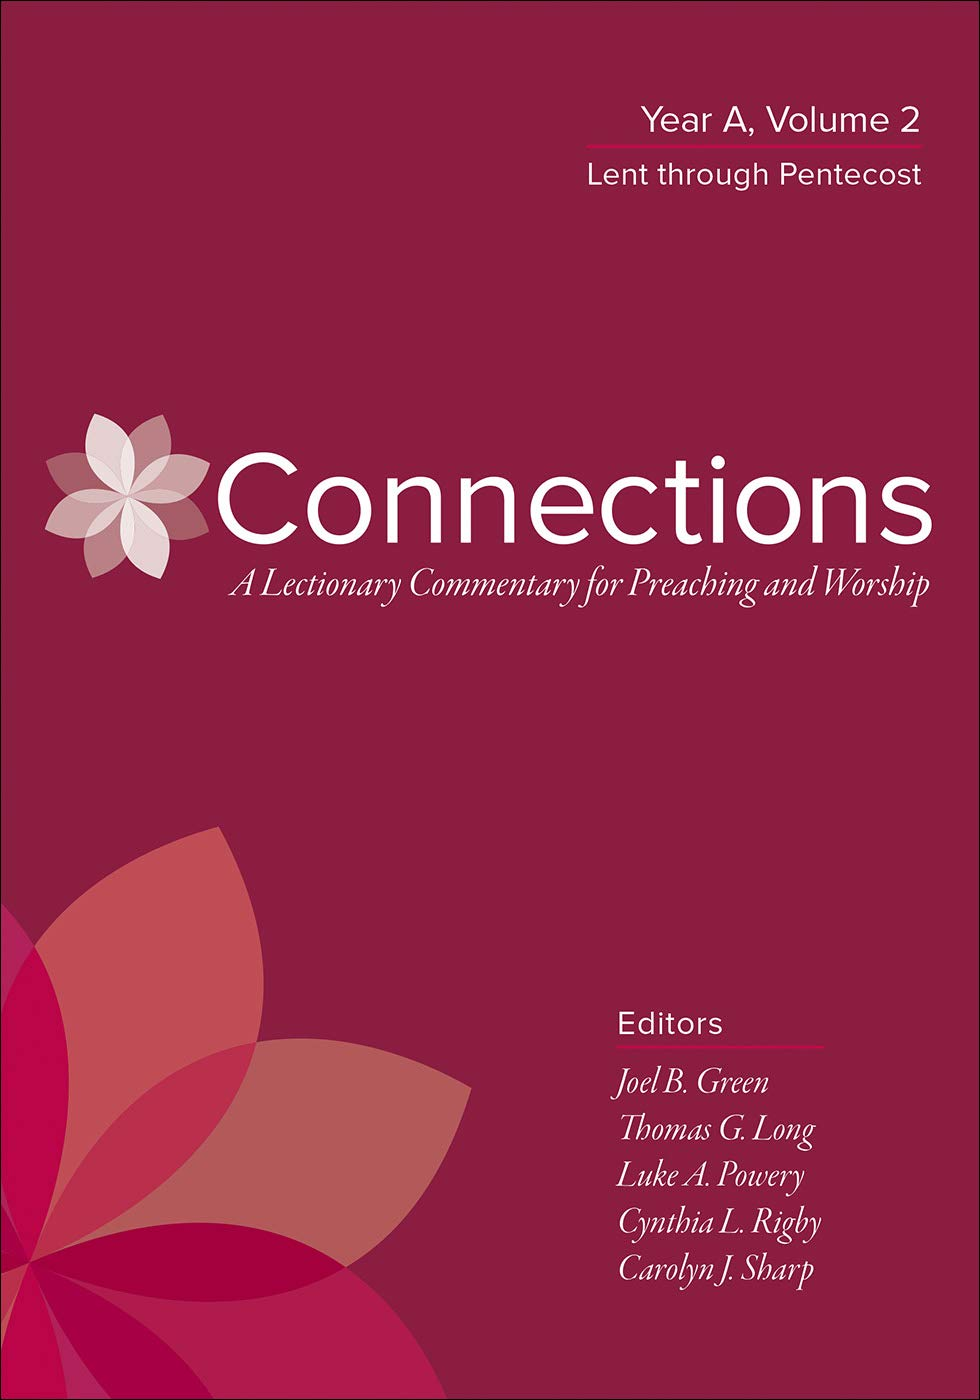 Connections: Year A, Volume 2: Lent through Pentecost by Westminster/John Knox